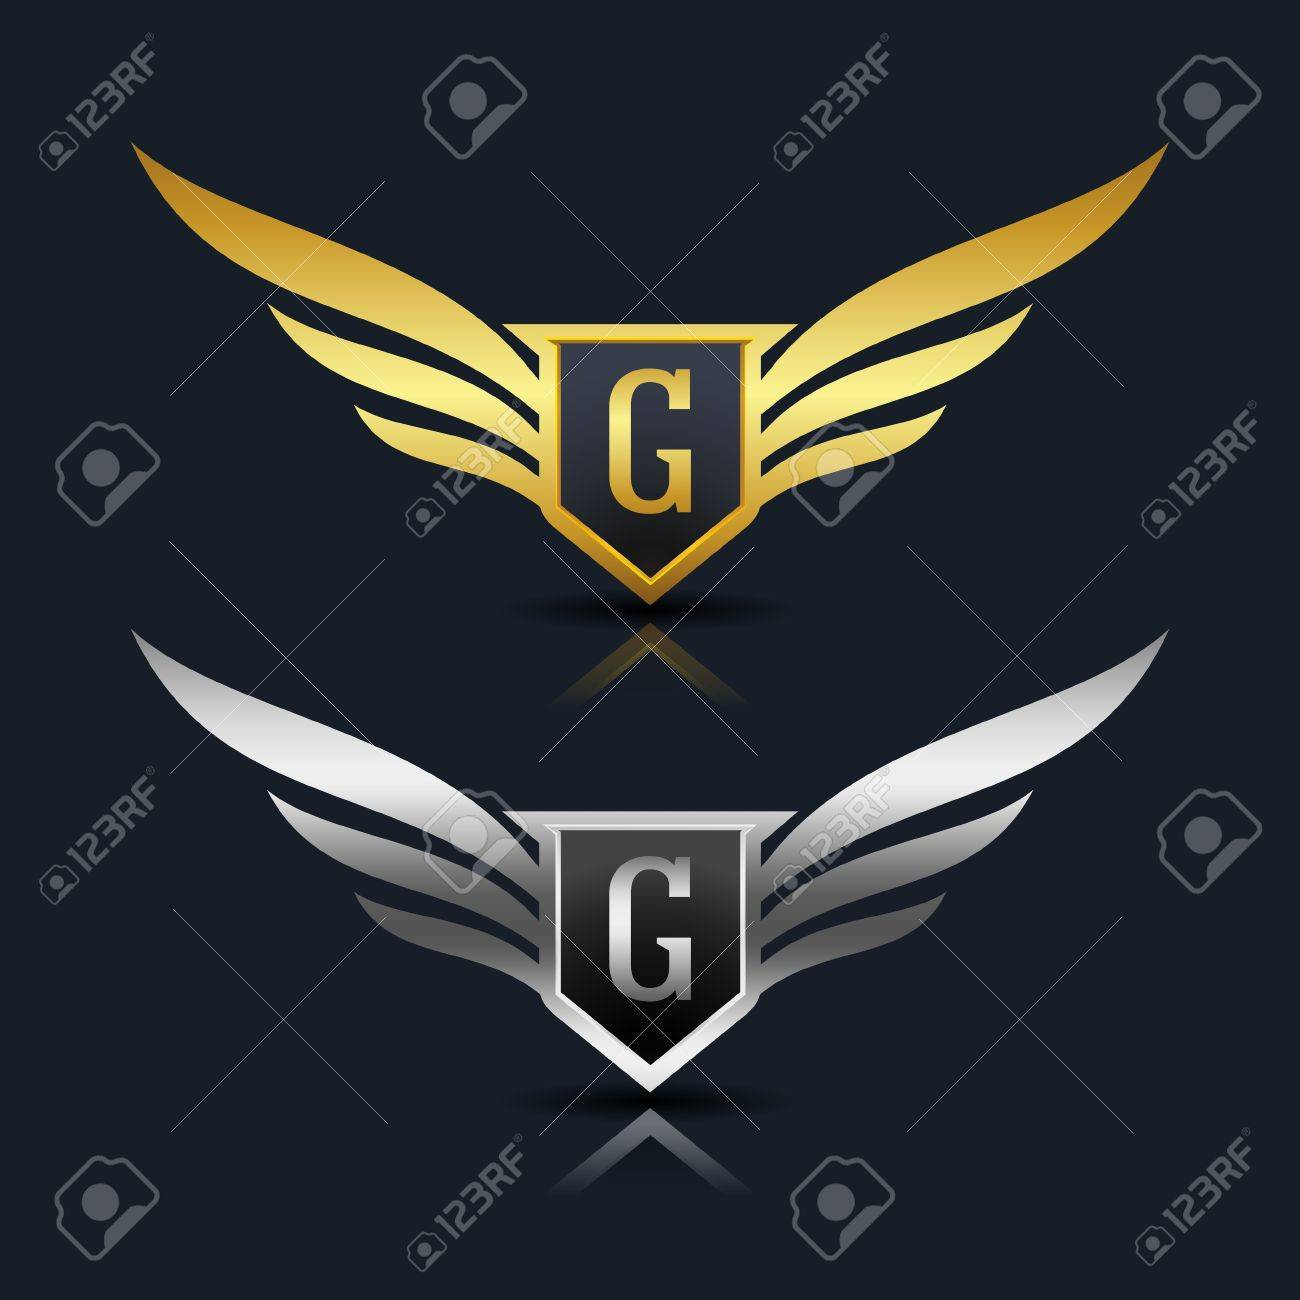 Wings Shield Letter G Logo Template Royalty Free Cliparts Vectors